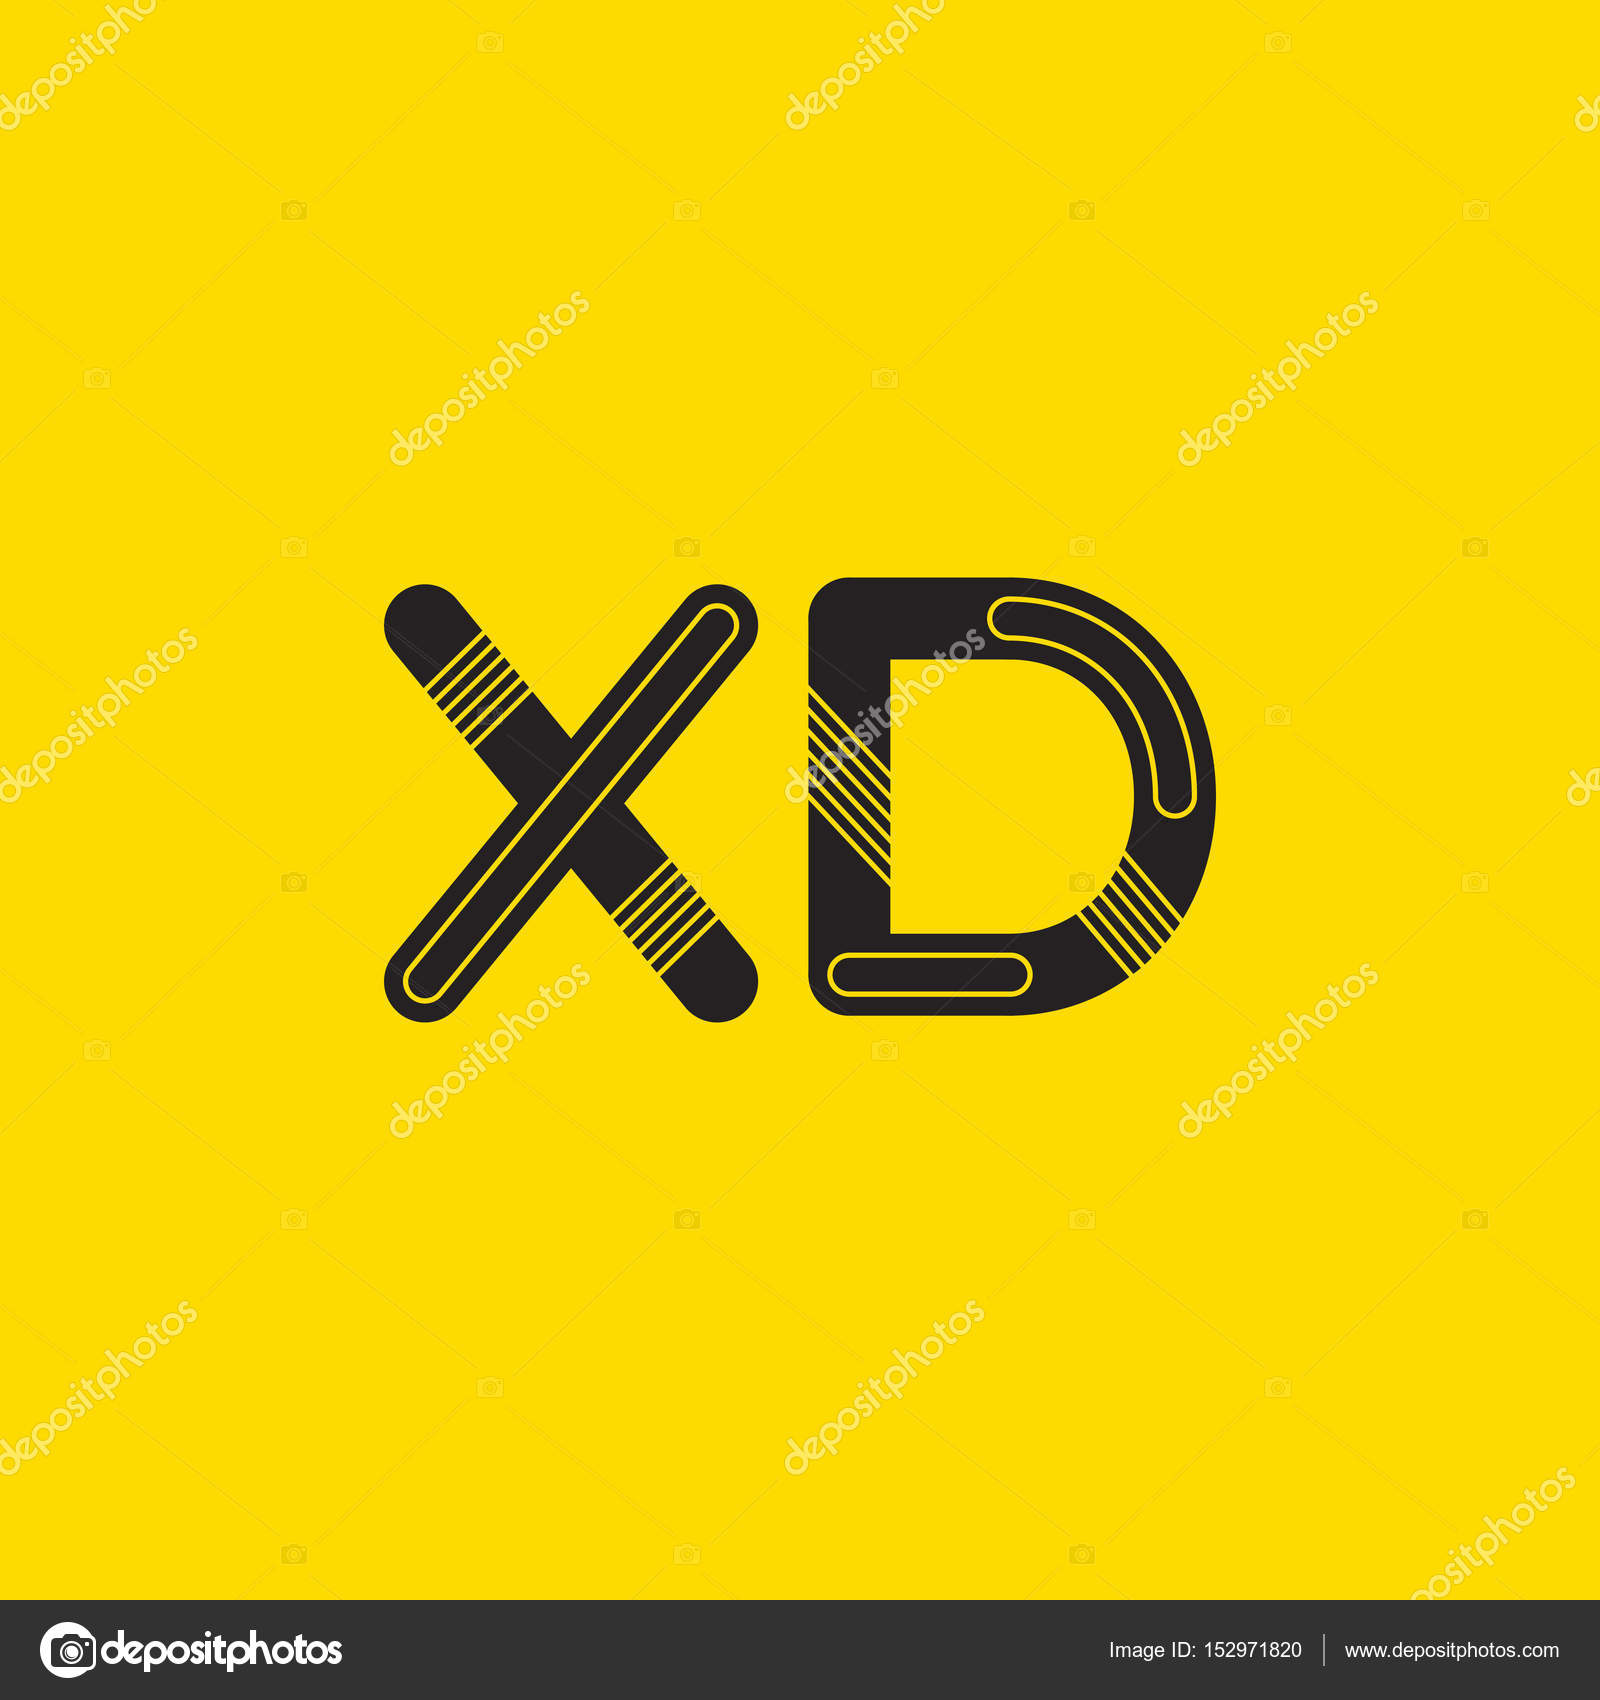 xd connected letters logo stock vector brainbistro 152971820